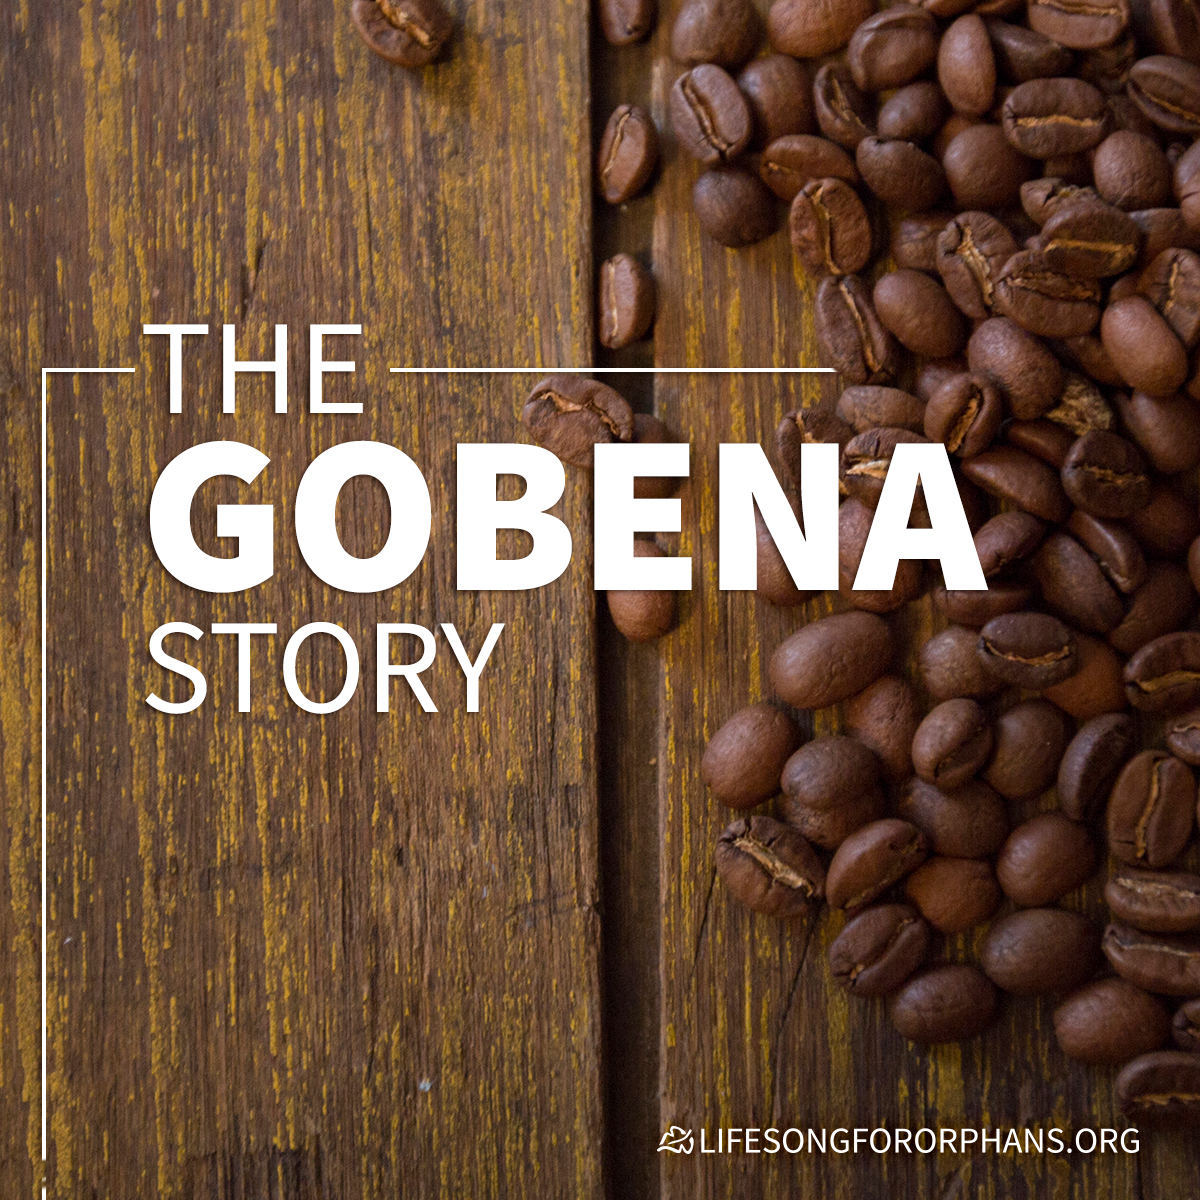 Click here for more details on Gobena and to hear the Gobena Story